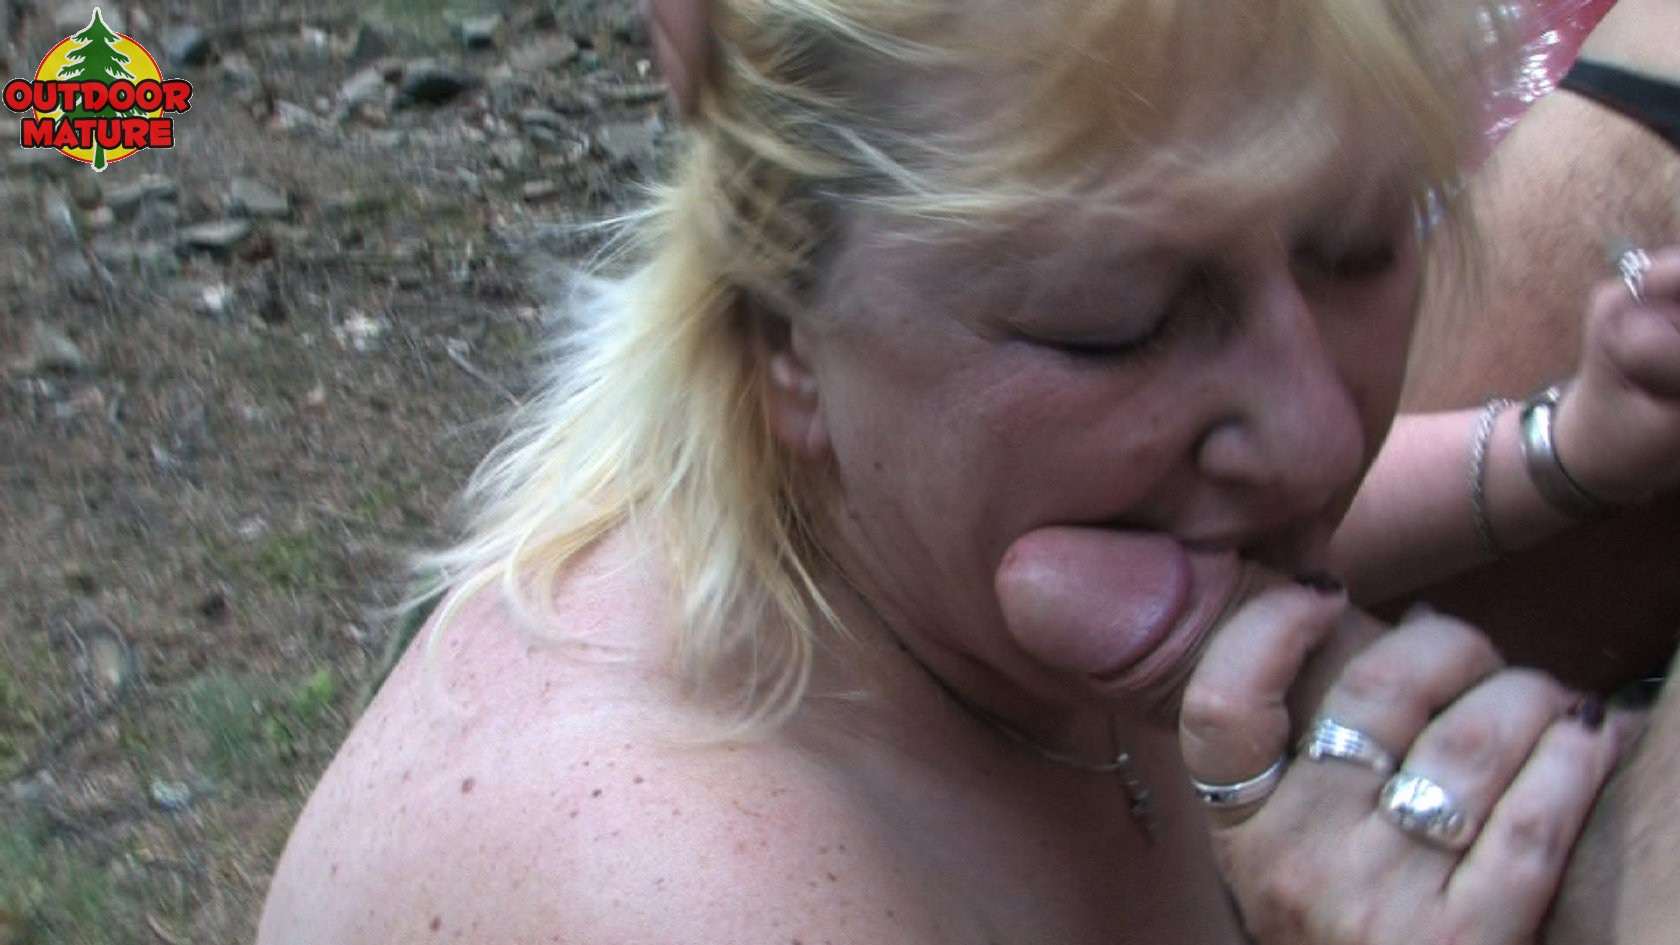 Chubby blonde wife oral and full sex on the couch at